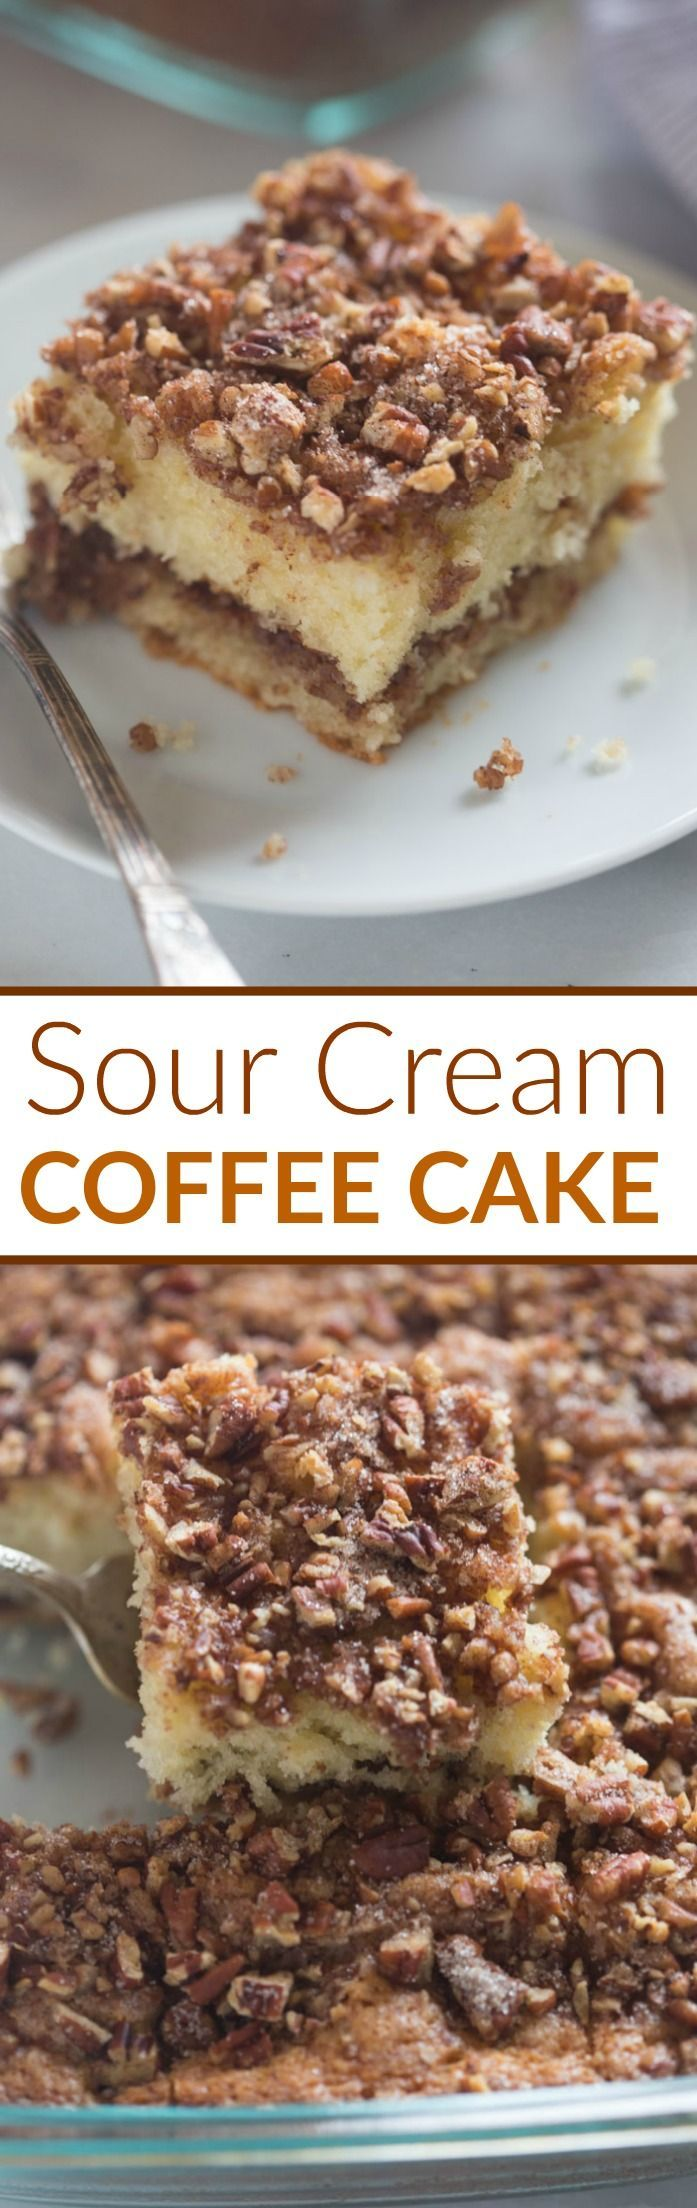 This Sour Cream Coffee Cake is not only incredibly EASY to ...